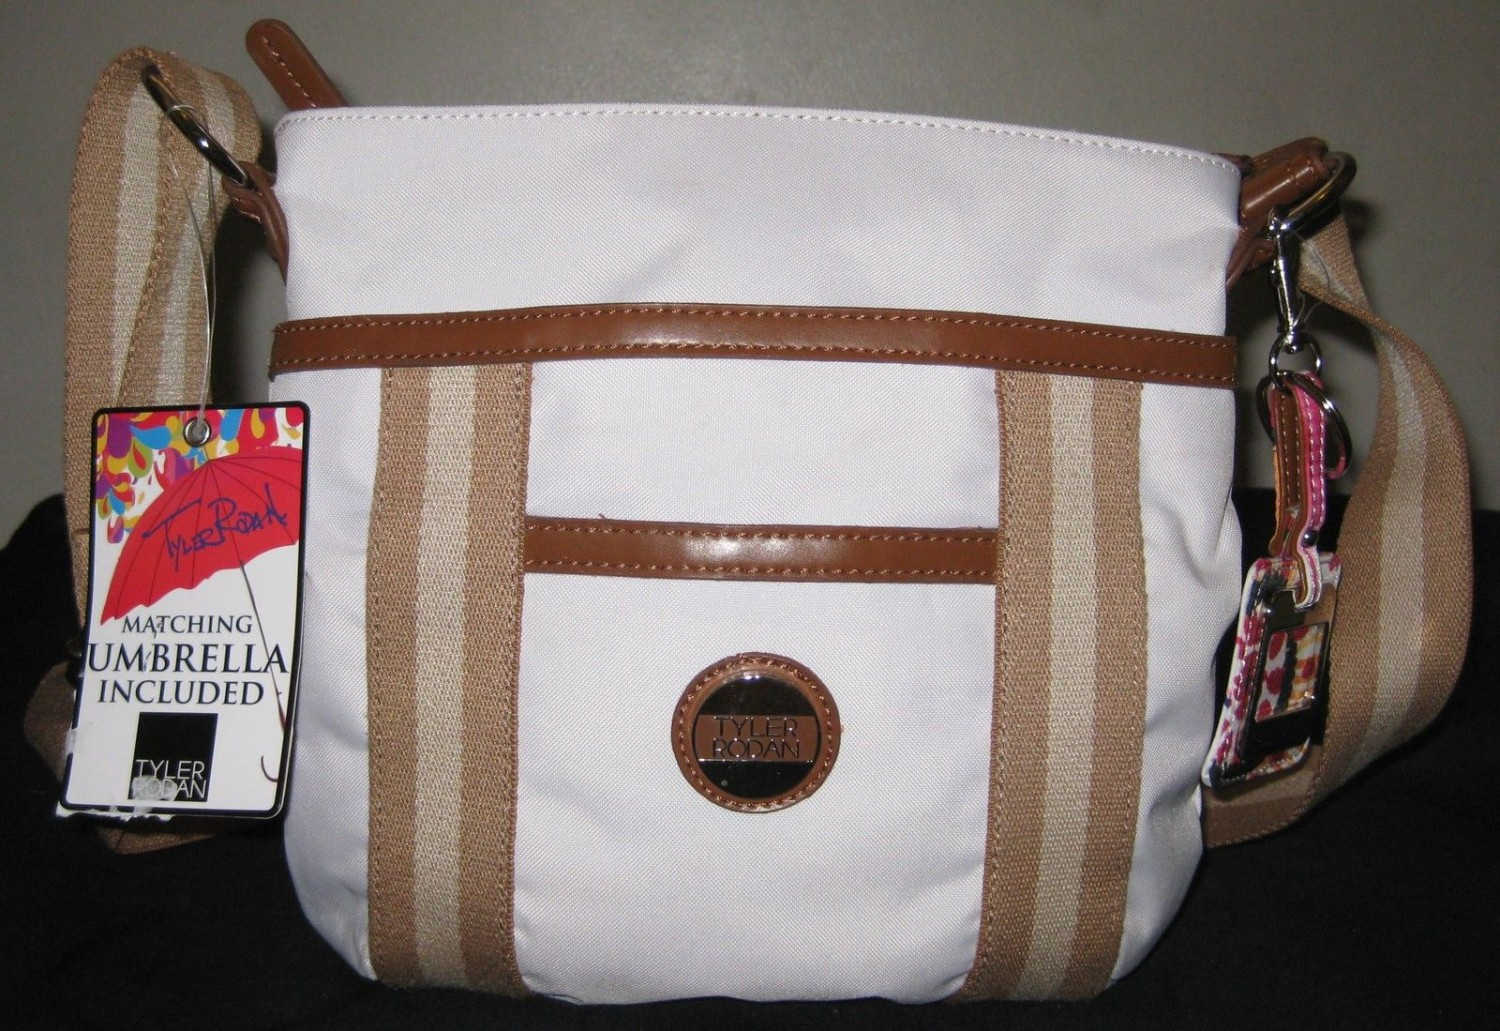 Tyler Rodan Cross Body Bag, Man Made